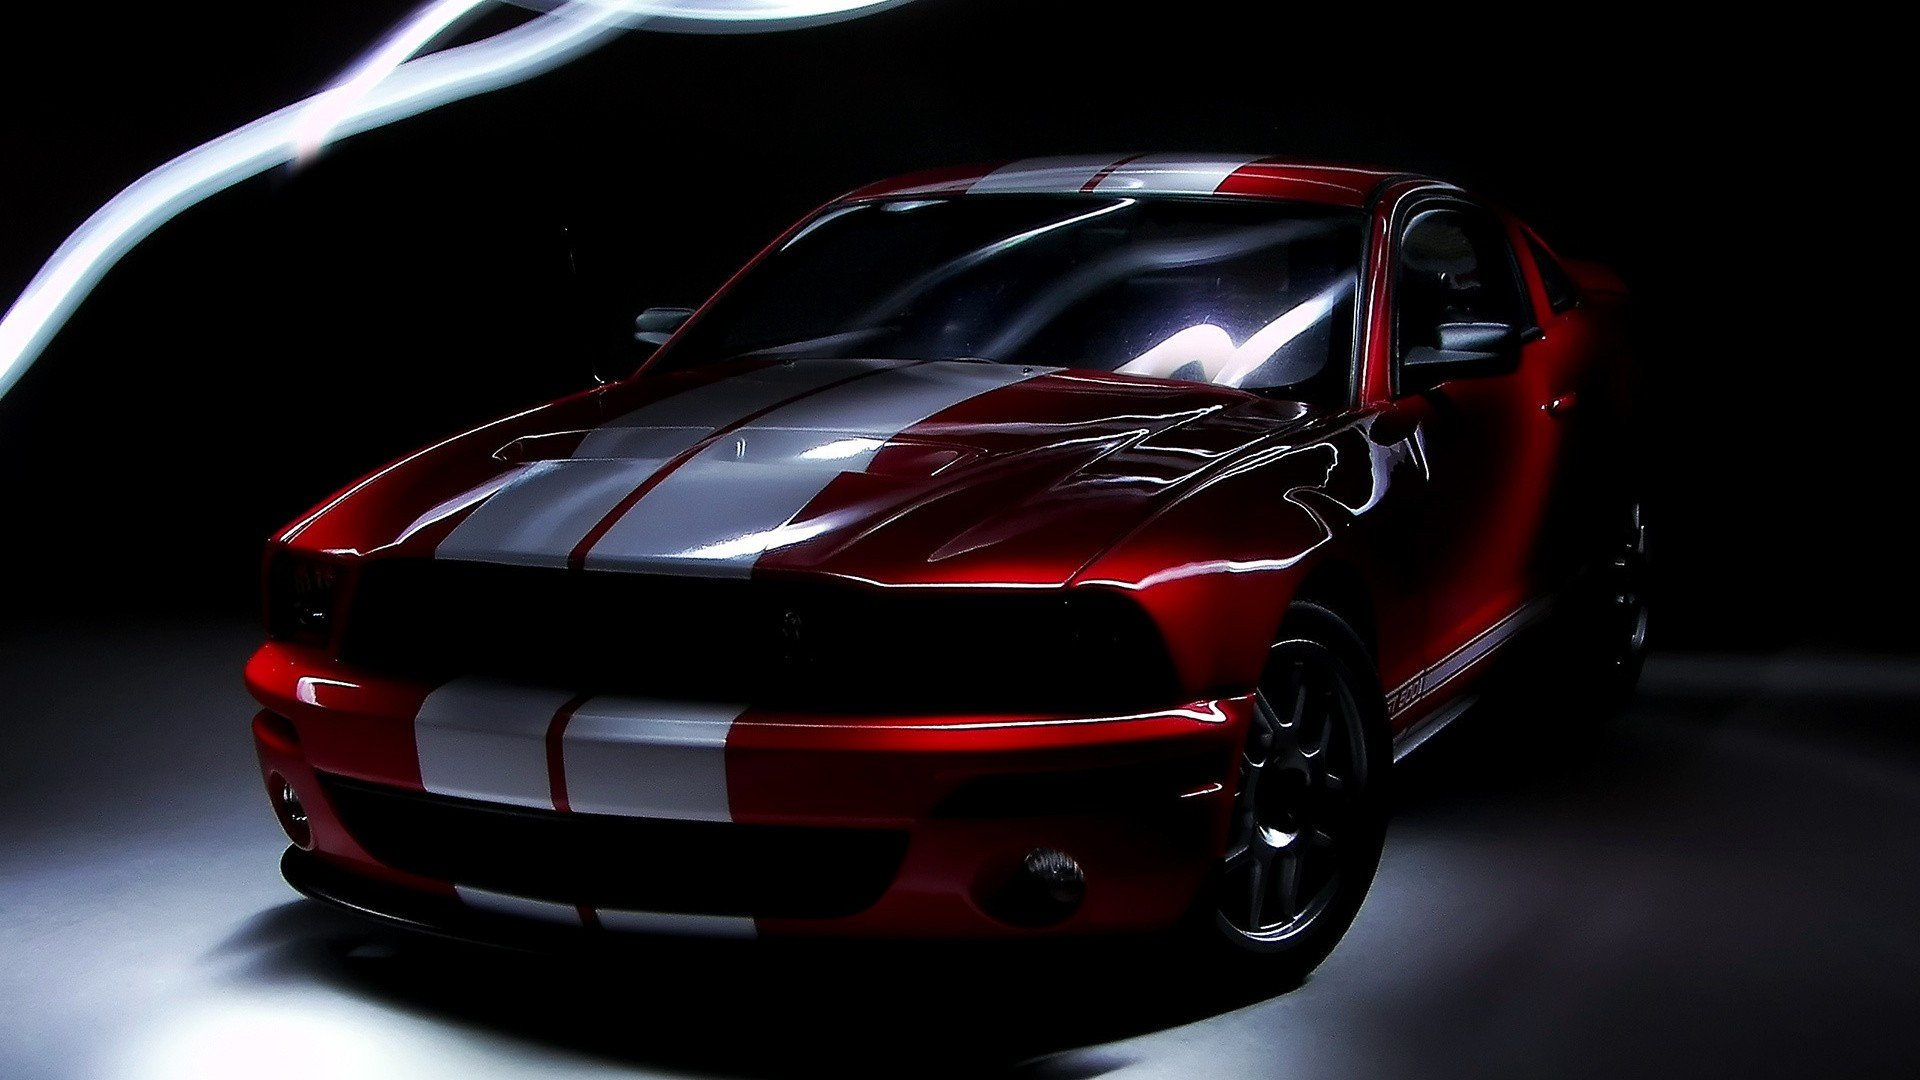 ford mustang shelby gt500 desktop 19201080 hd wallpaper 1218246 1920x1080